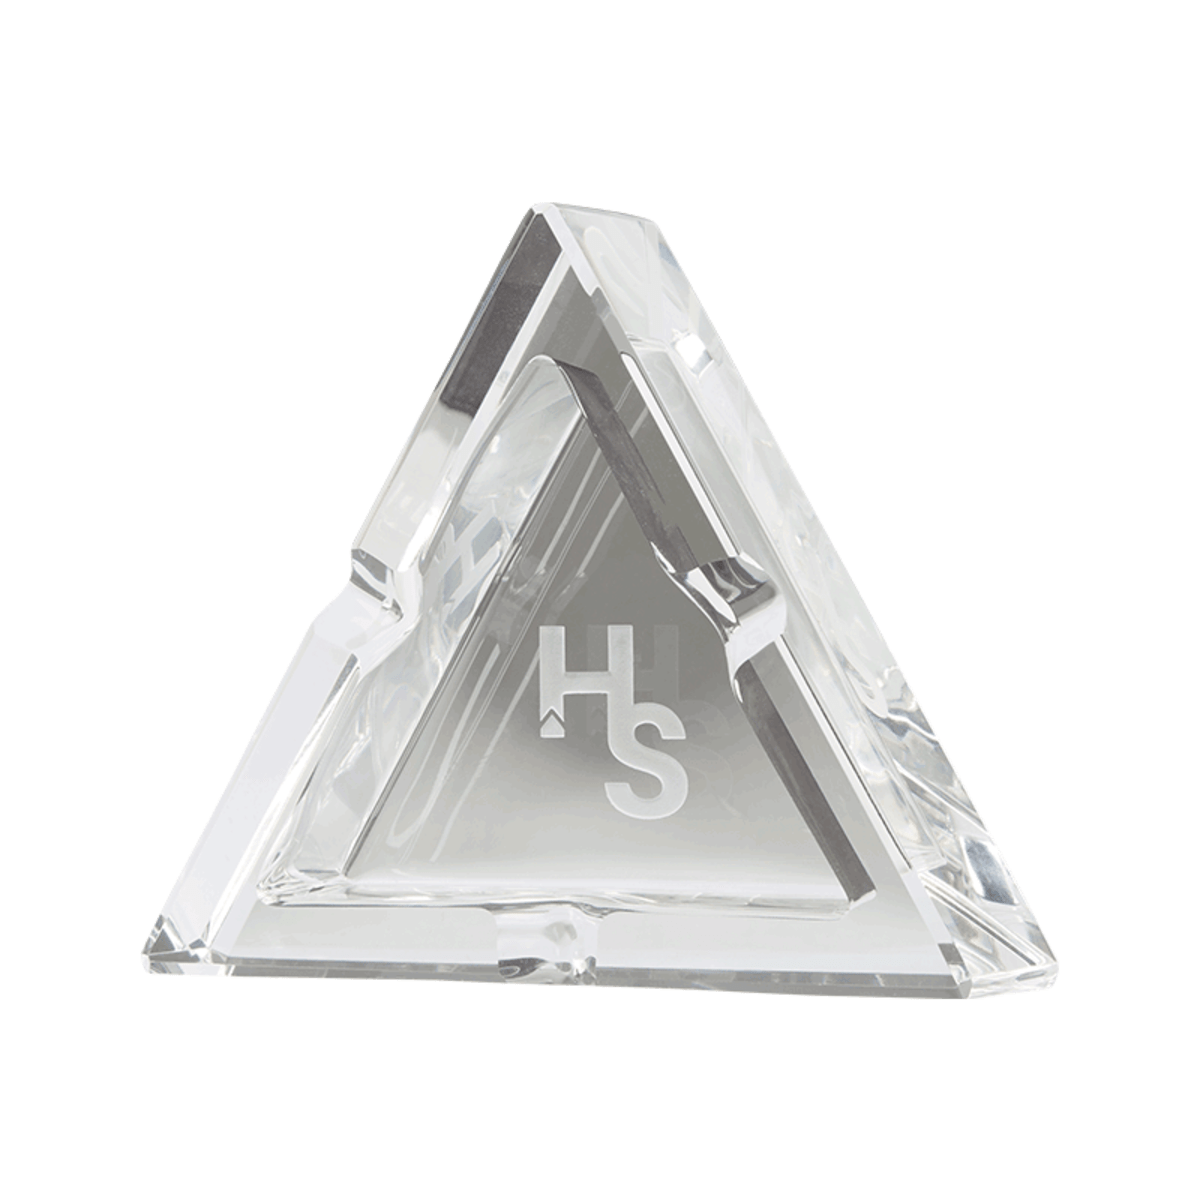 Higher Standards Accessories HIGHER STANDARDS PREMIUM CRYSTAL ASHTRAY